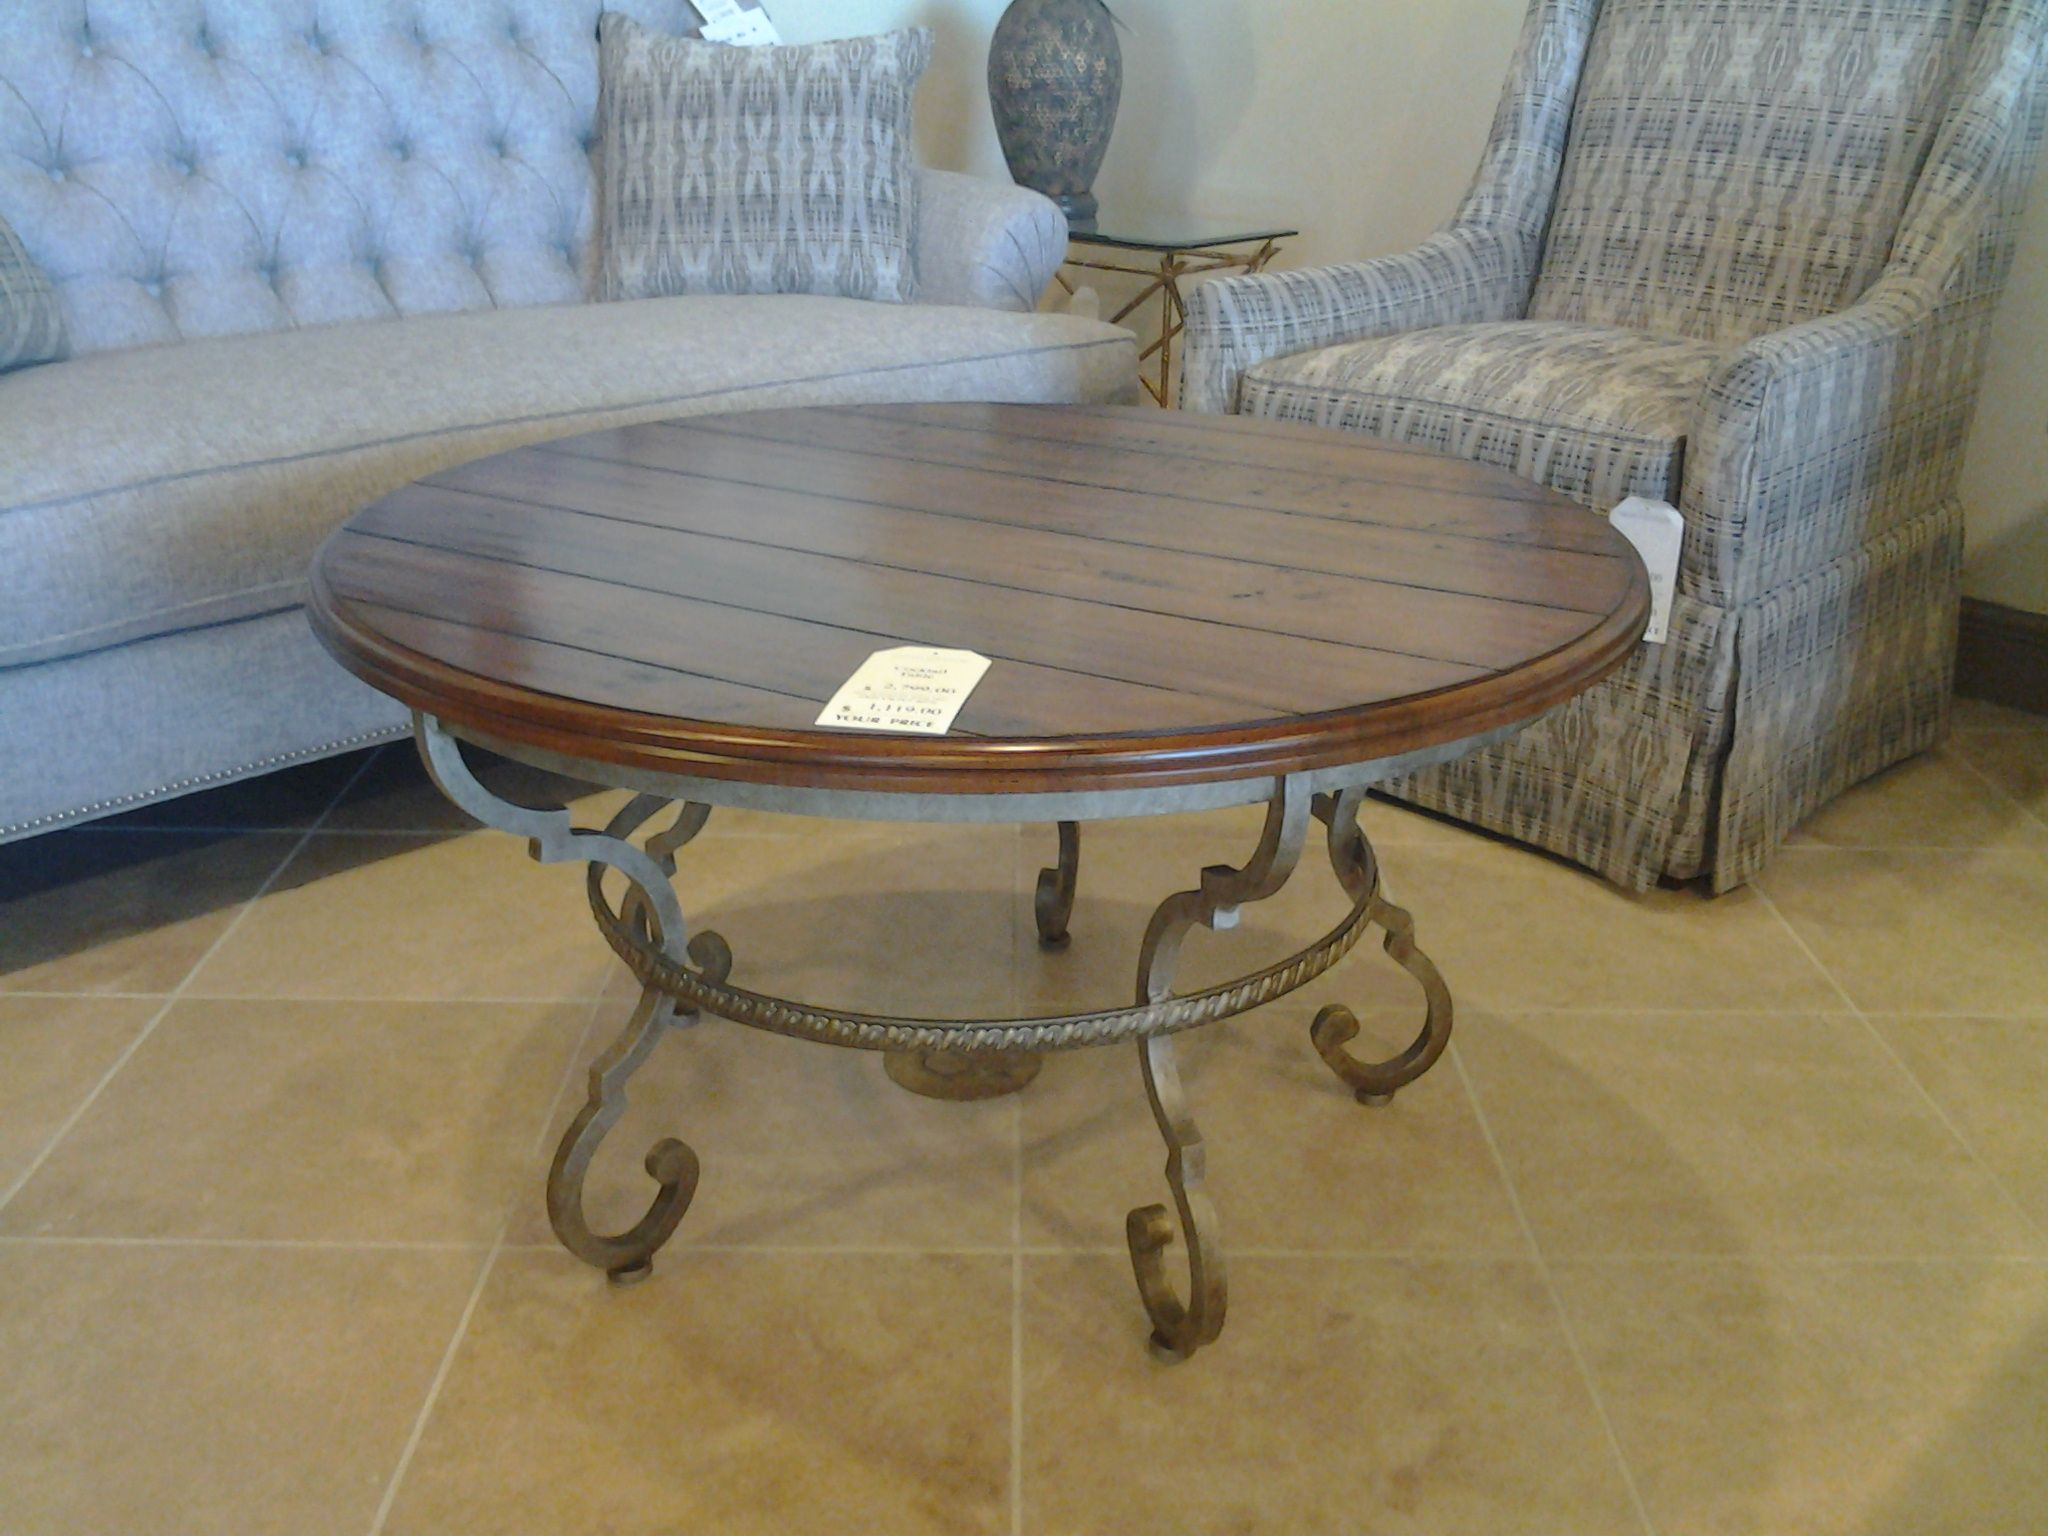 Round cocktail table with metal base made by Century Furniture